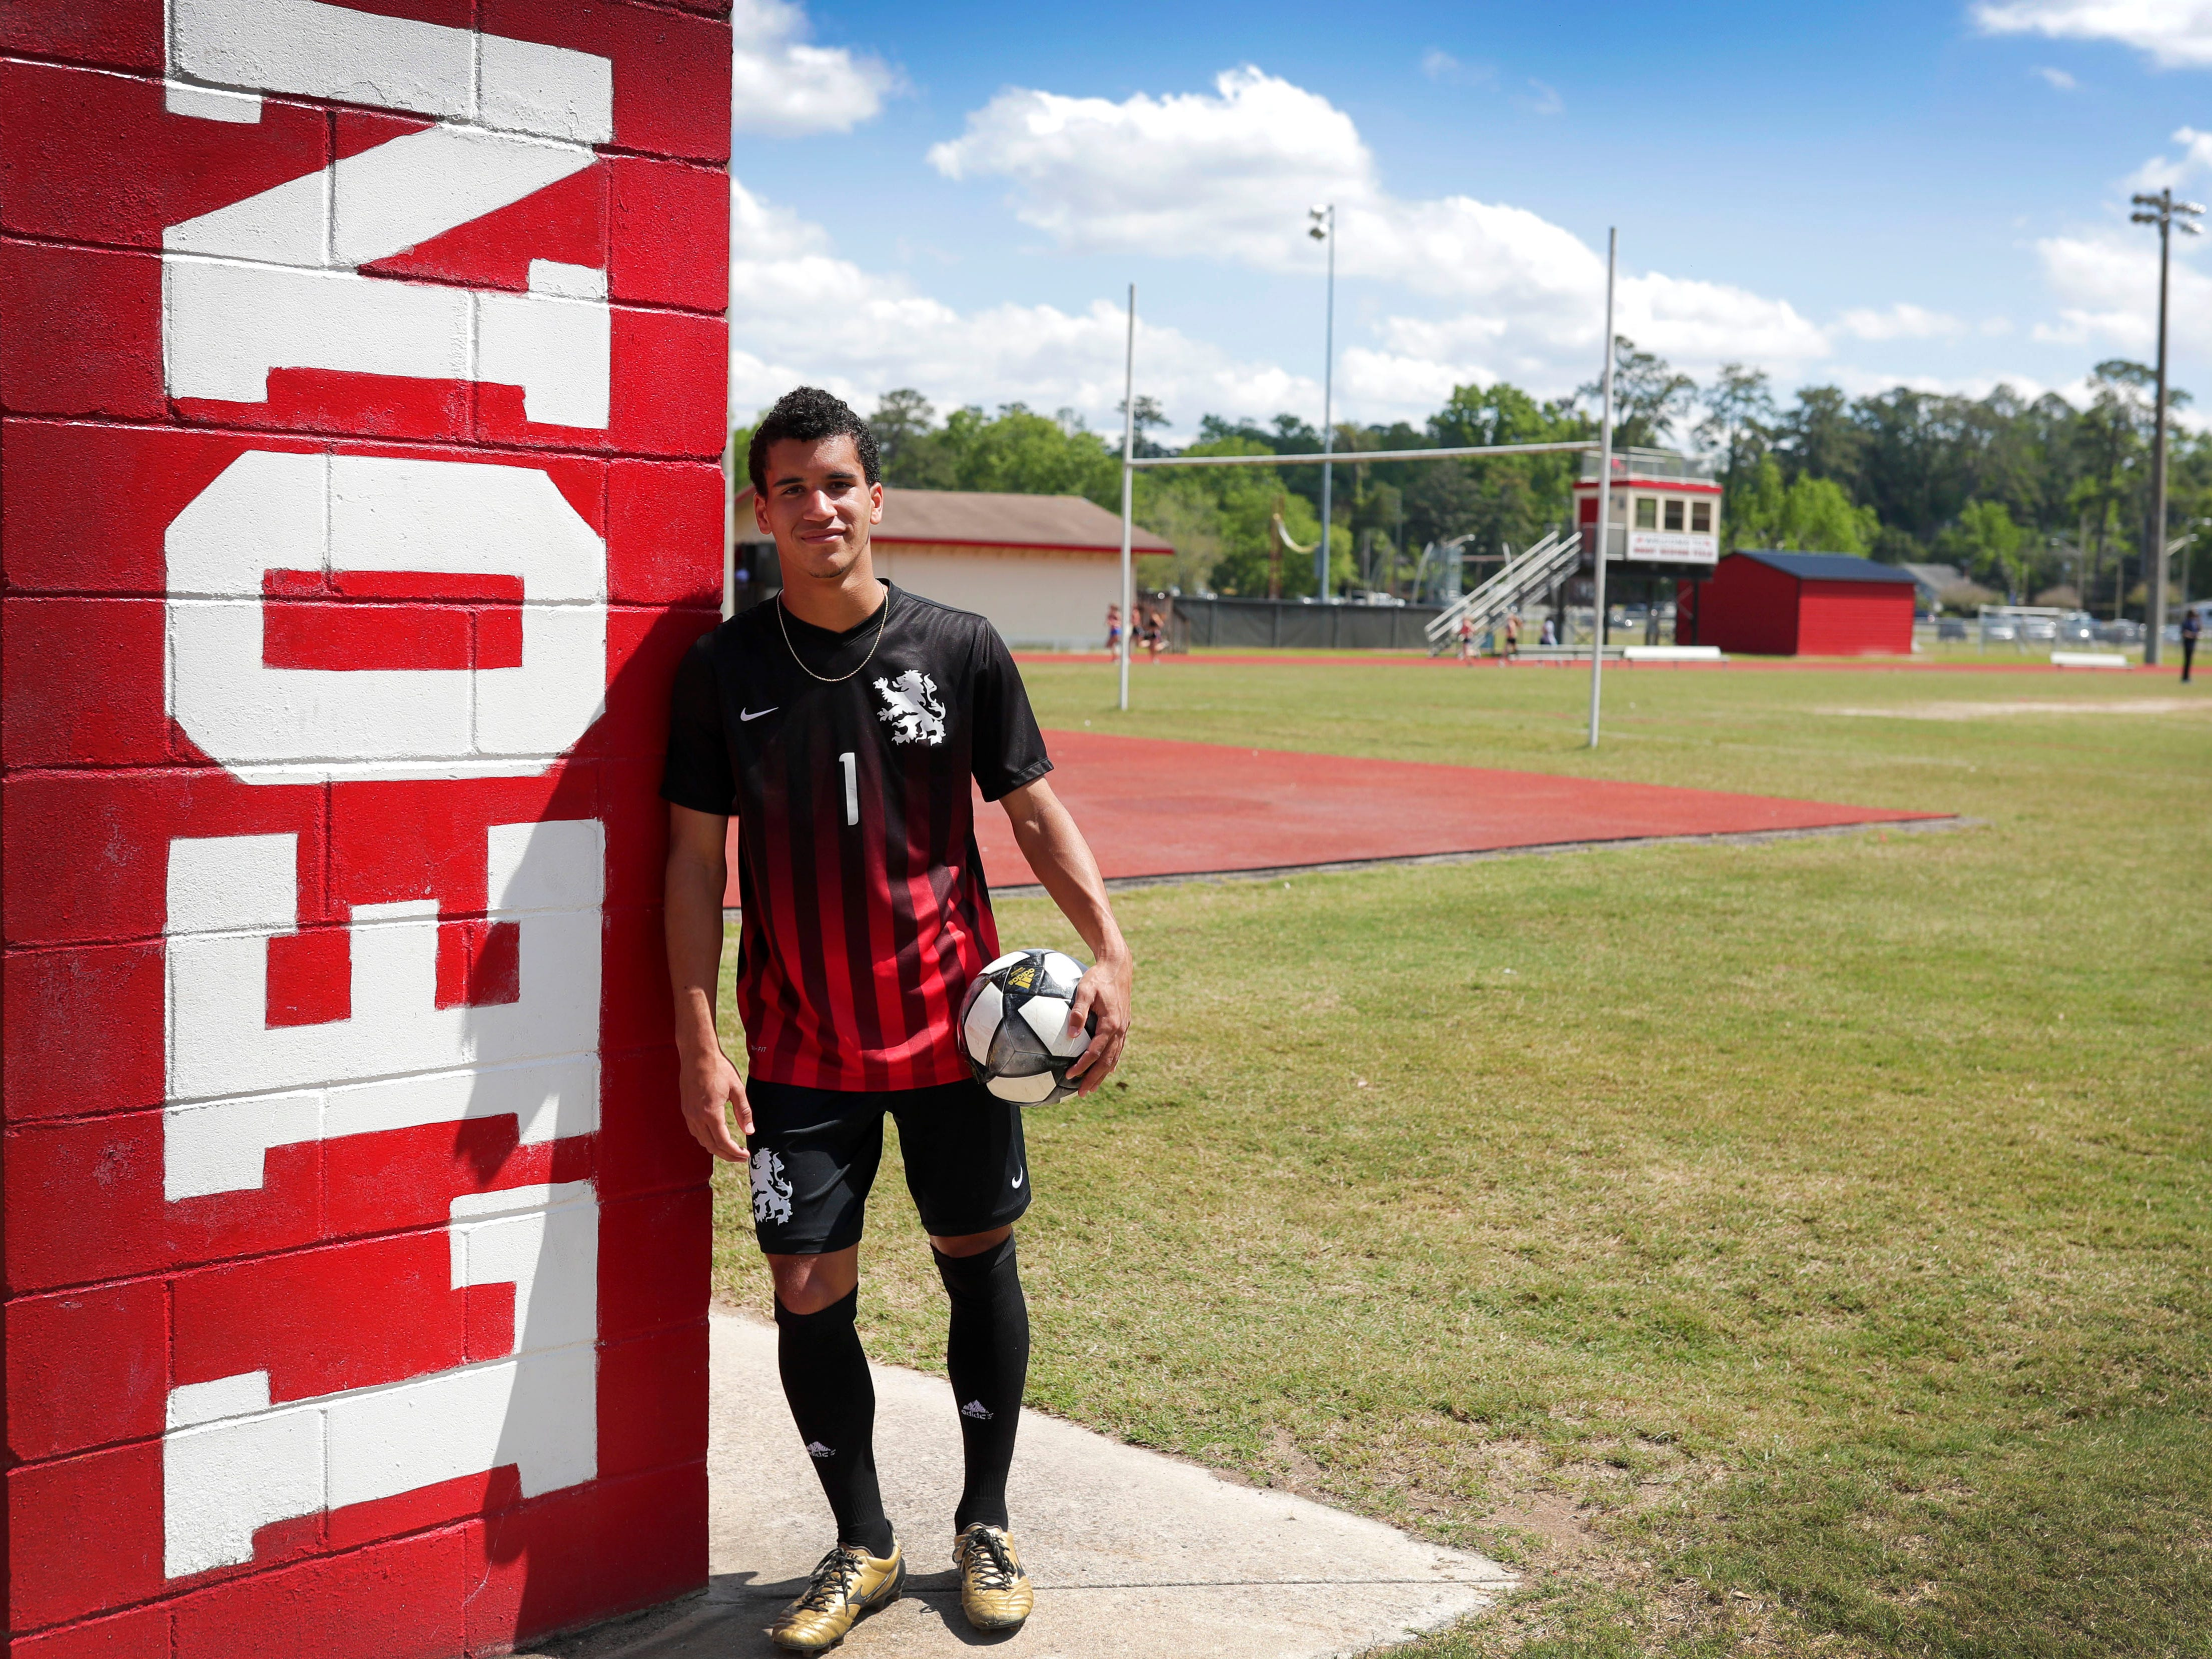 Leon senior forward Sy Fontenot is the 2019 All-Big Bend Player of the Year in boys soccer after scoring 30 goals with 21 assists during the Lions' 24-1-1 season.